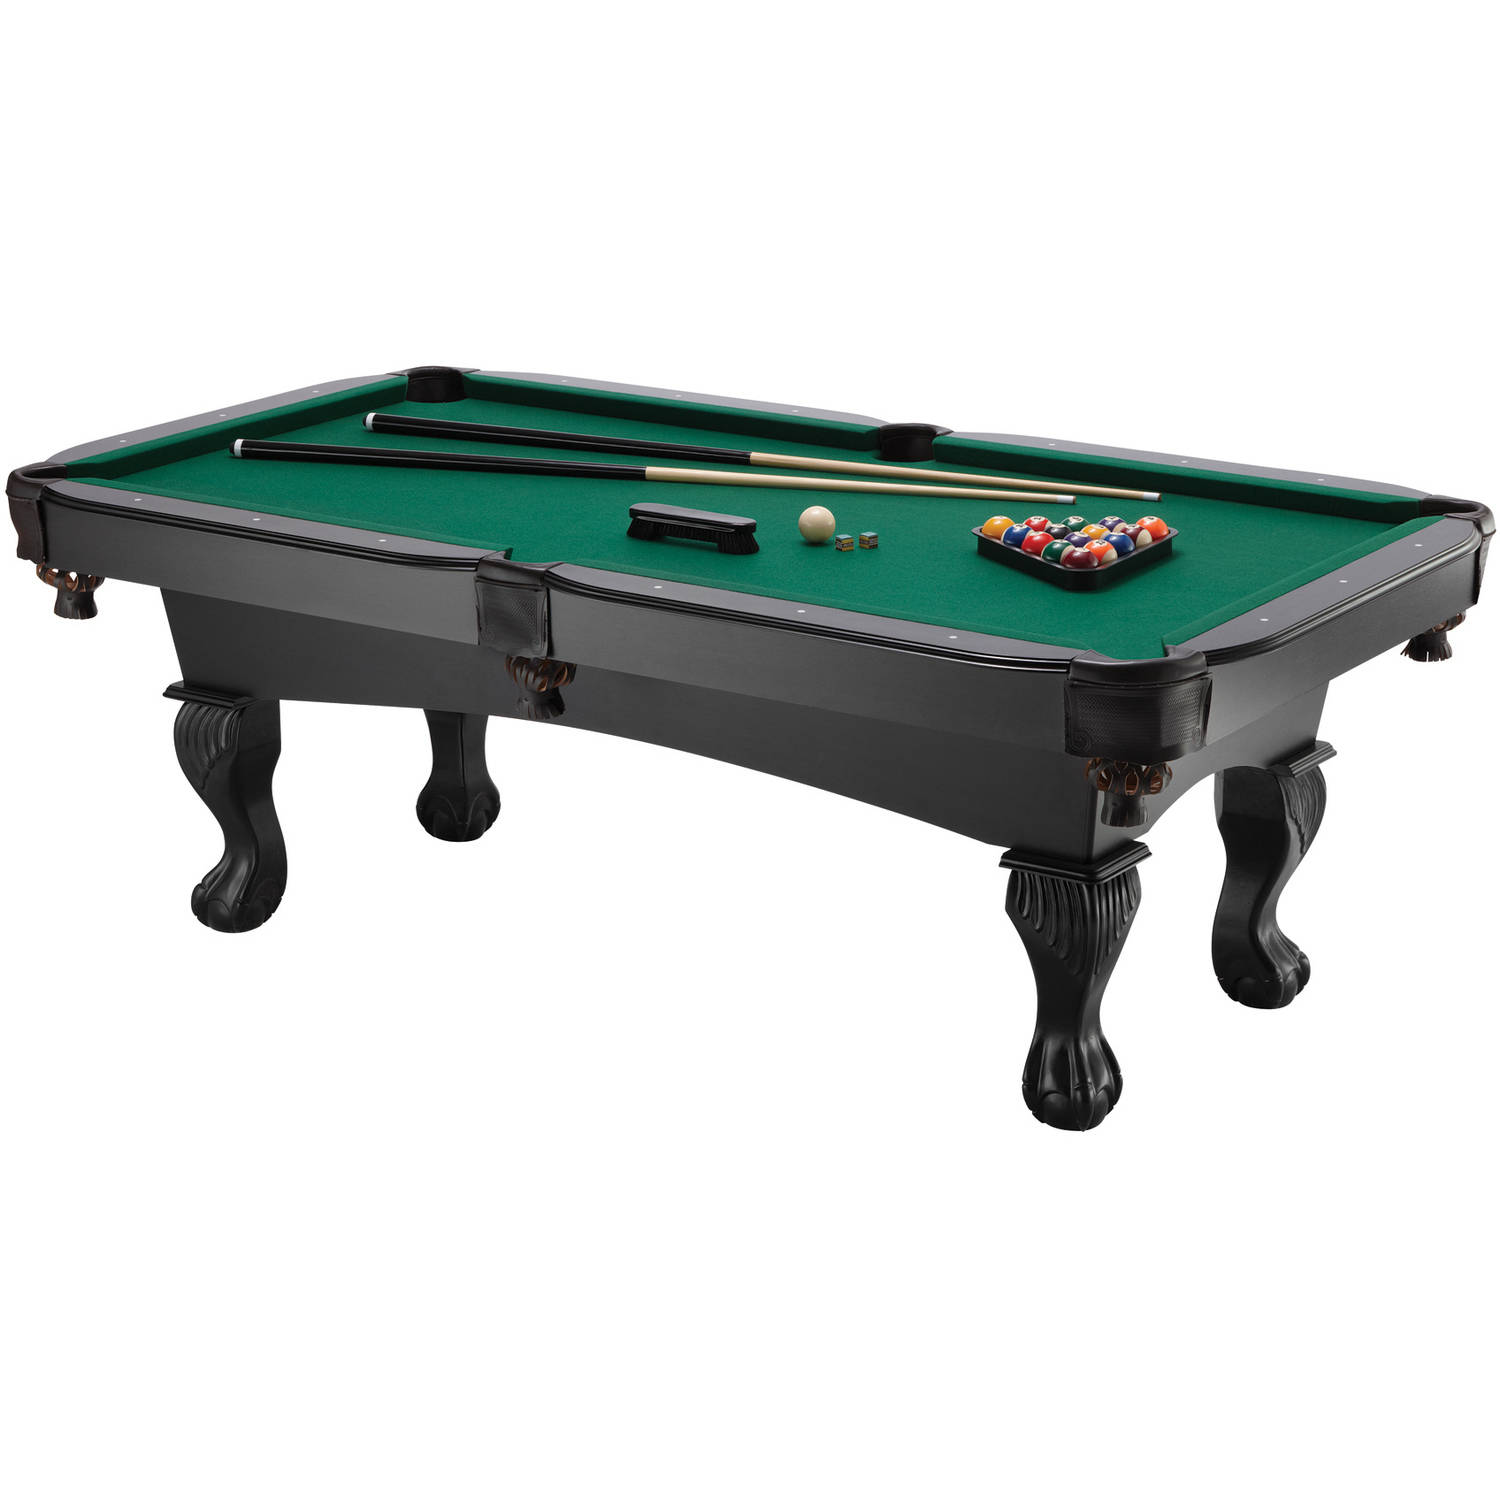 American Heritage Billiards Drop Shot Table Tennis Conversion Top With  Accessory Kit   Walmart.com